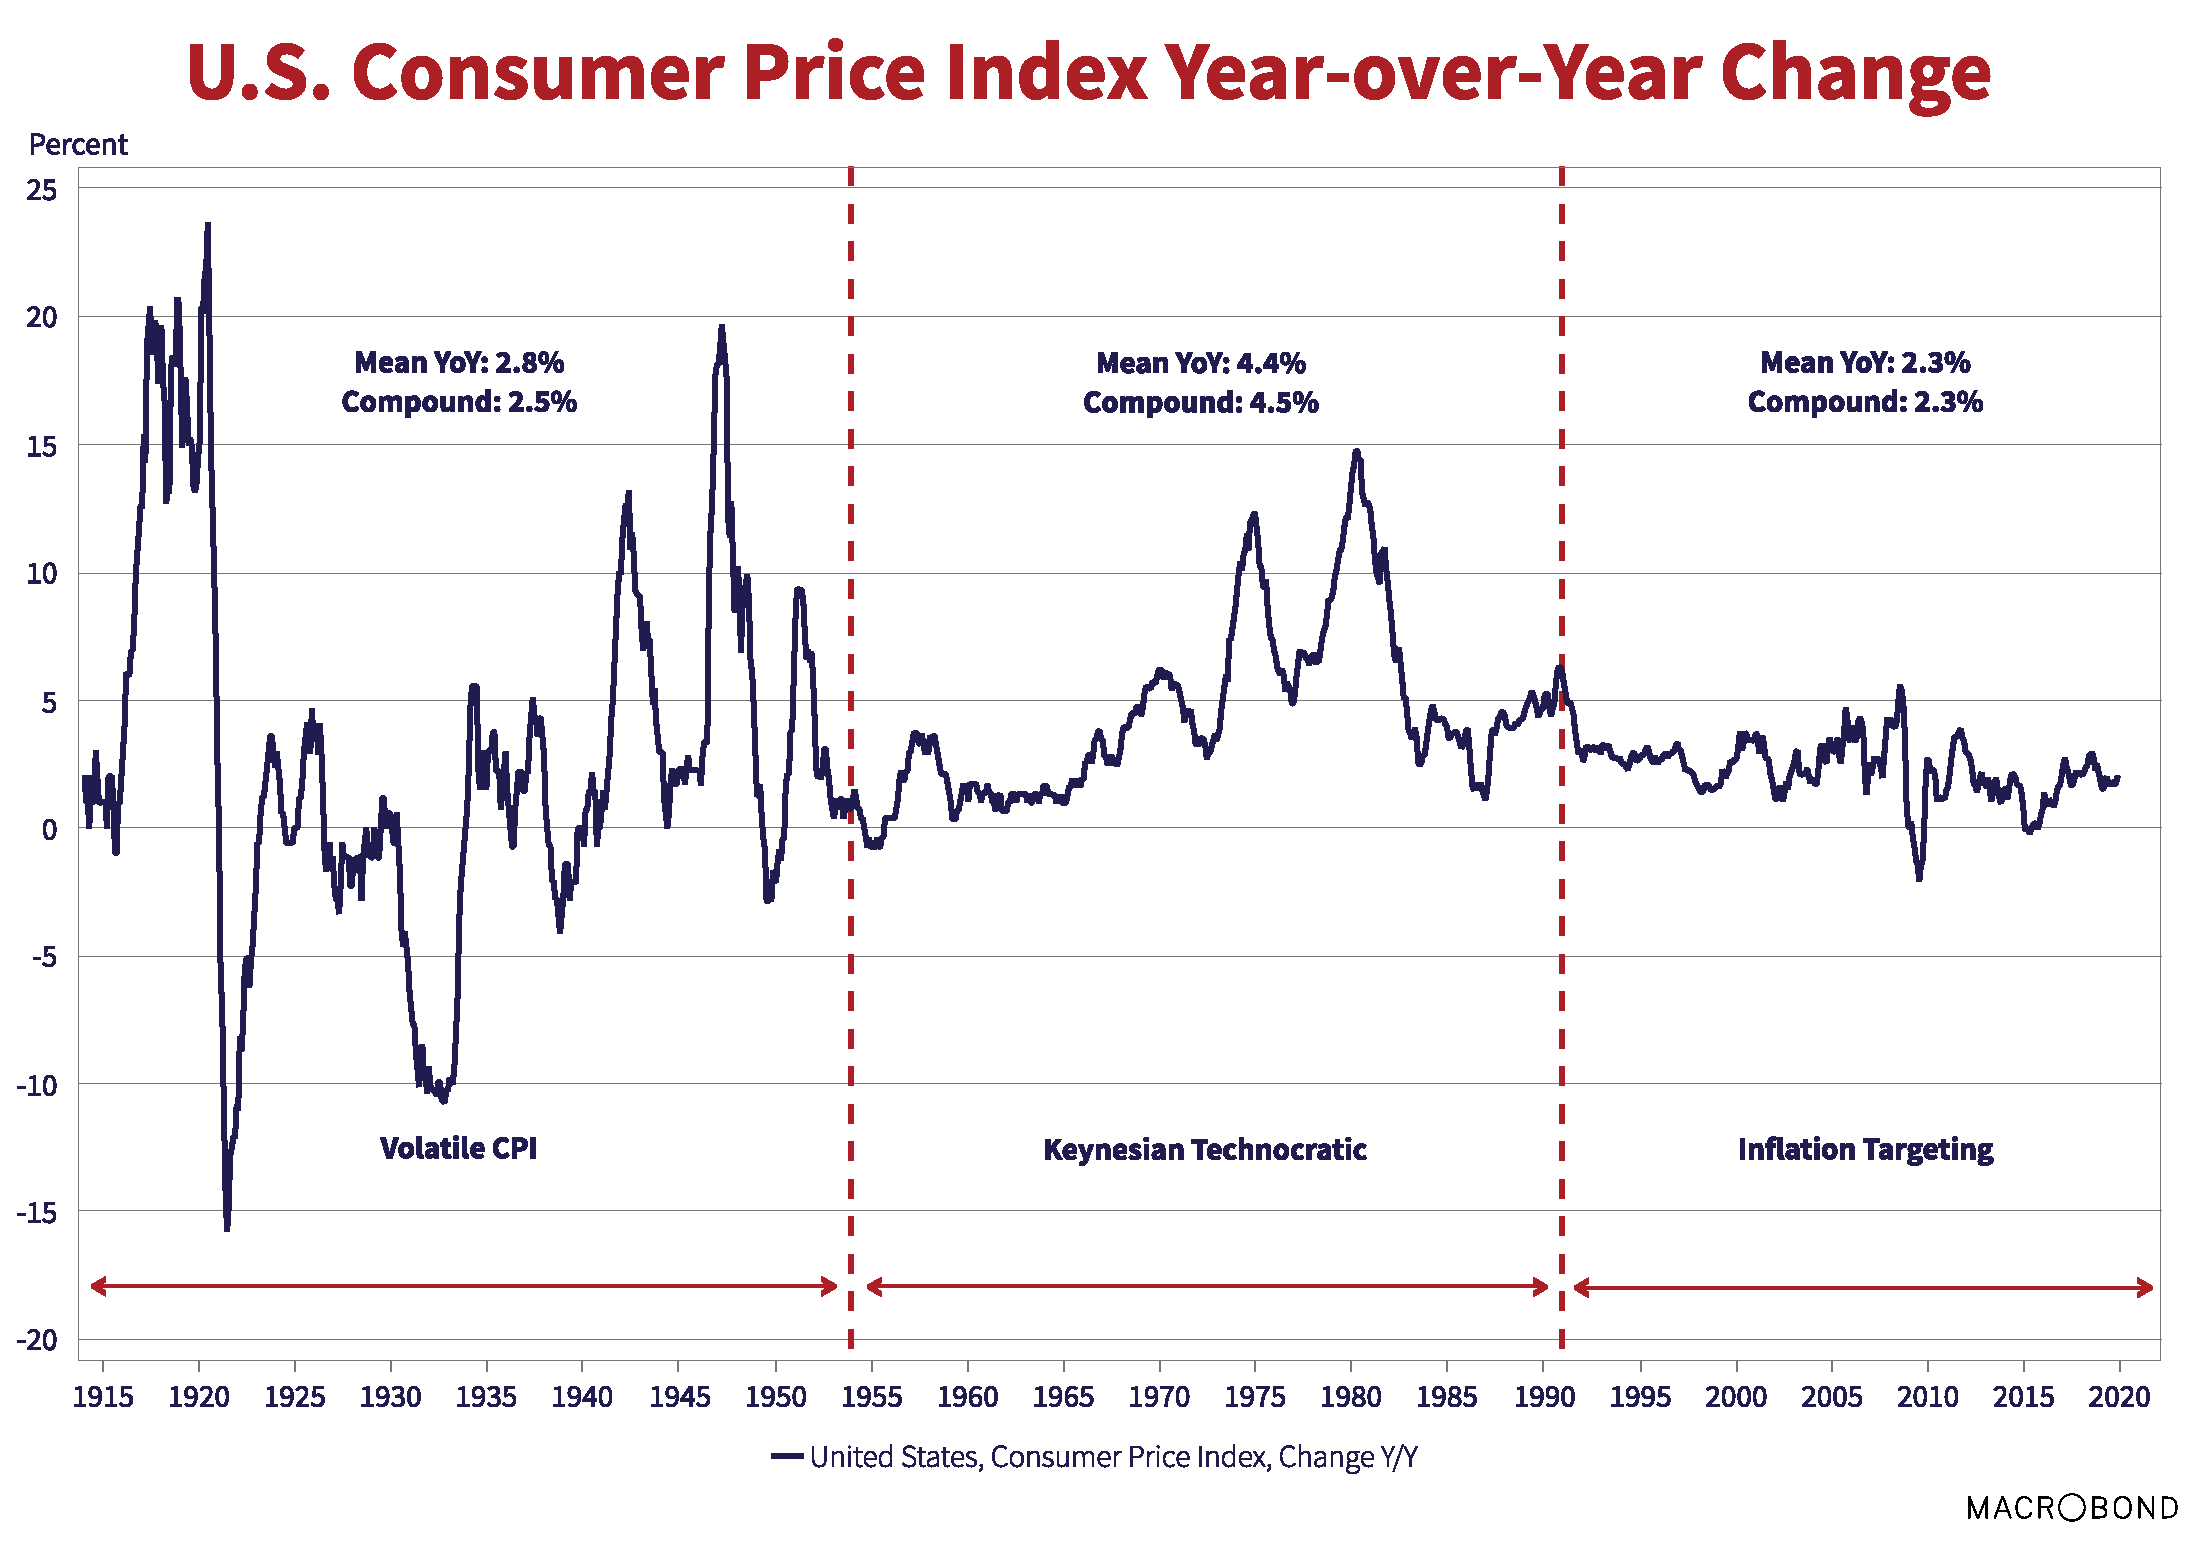 U.S Consumer Price Index Year-over-Year Change. Source: macrobond. Graph is marked into three vertical segments: volatile CPI, Keynesian Technocratic, Inflation Targeting.